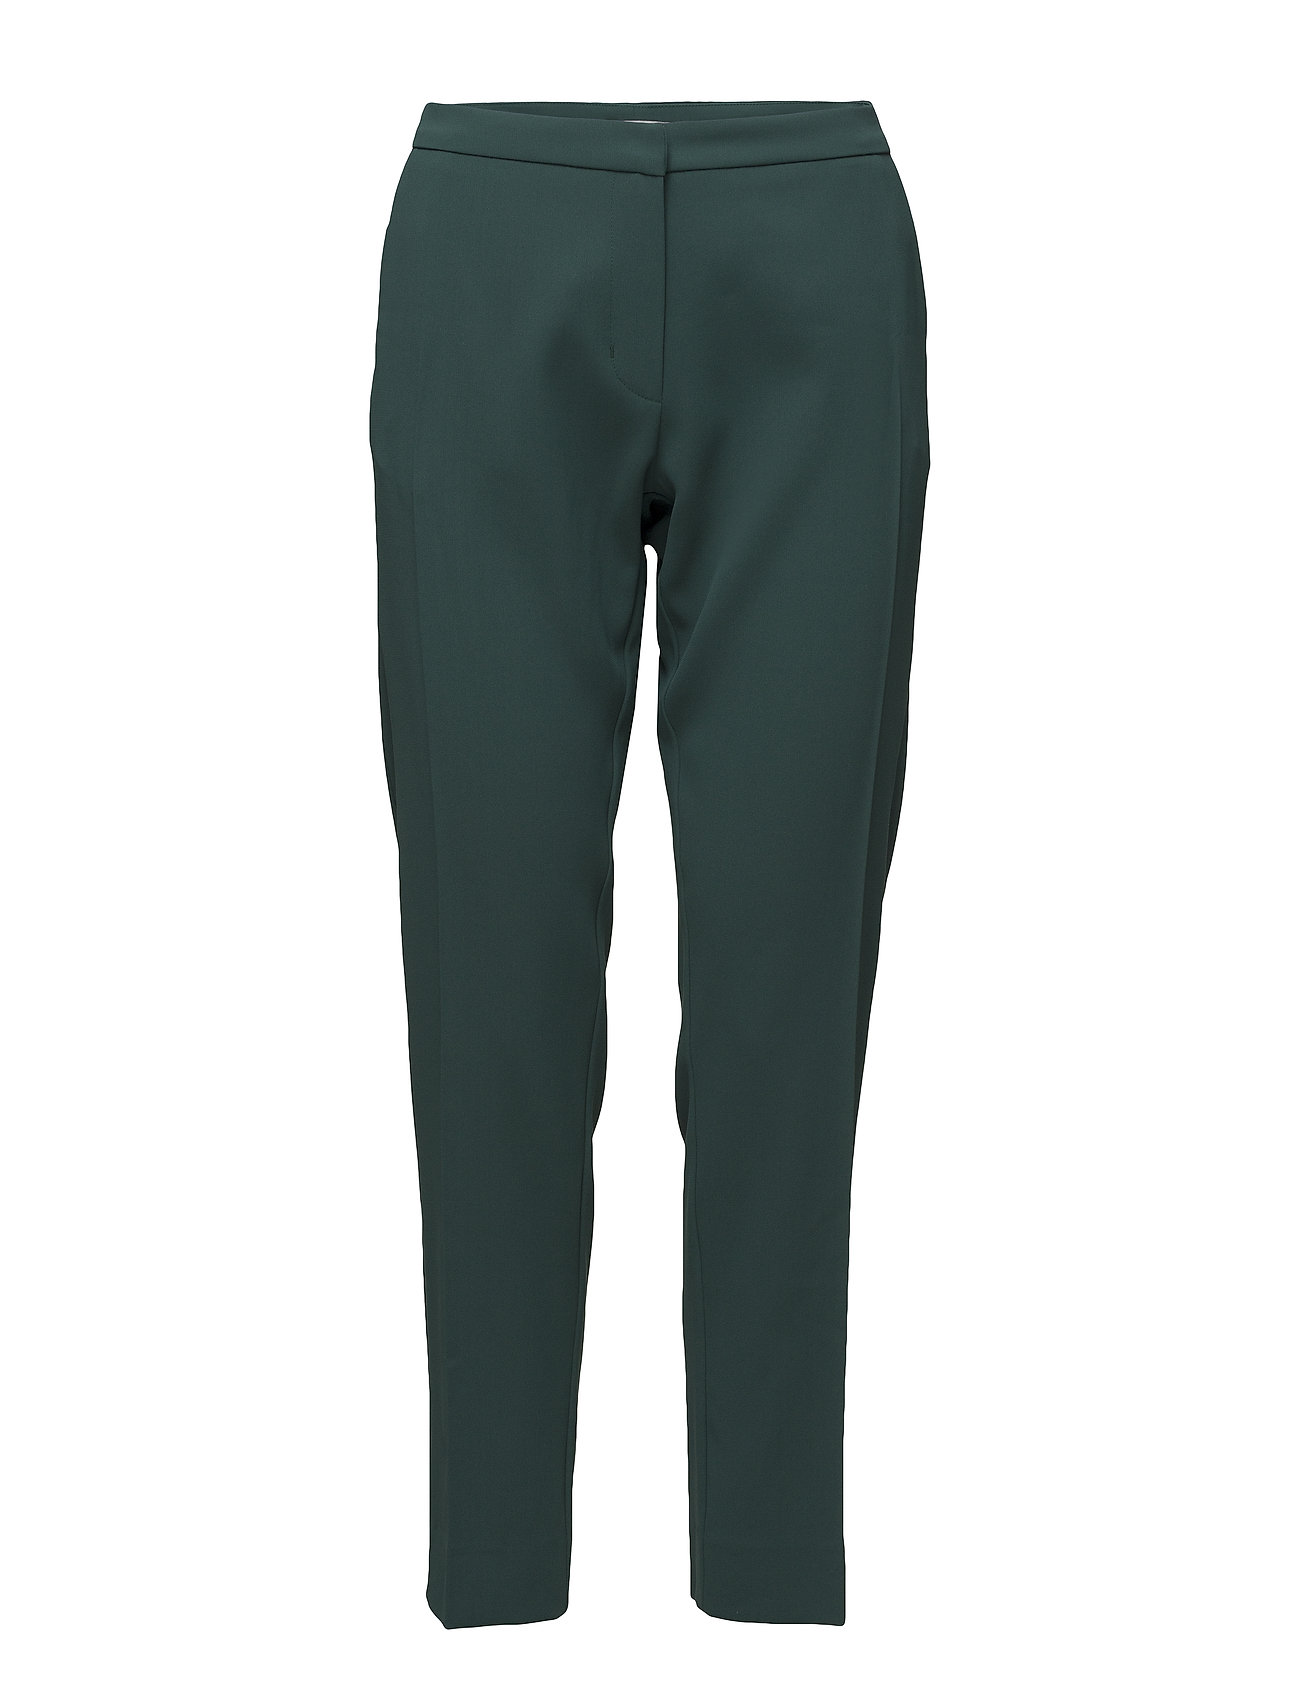 Pants Pants 9932bayberrySamsøeamp; Nell Nell Nell 9932bayberrySamsøeamp; 9932bayberrySamsøeamp; Nell Pants 9932bayberrySamsøeamp; Pants Y6vbfyg7